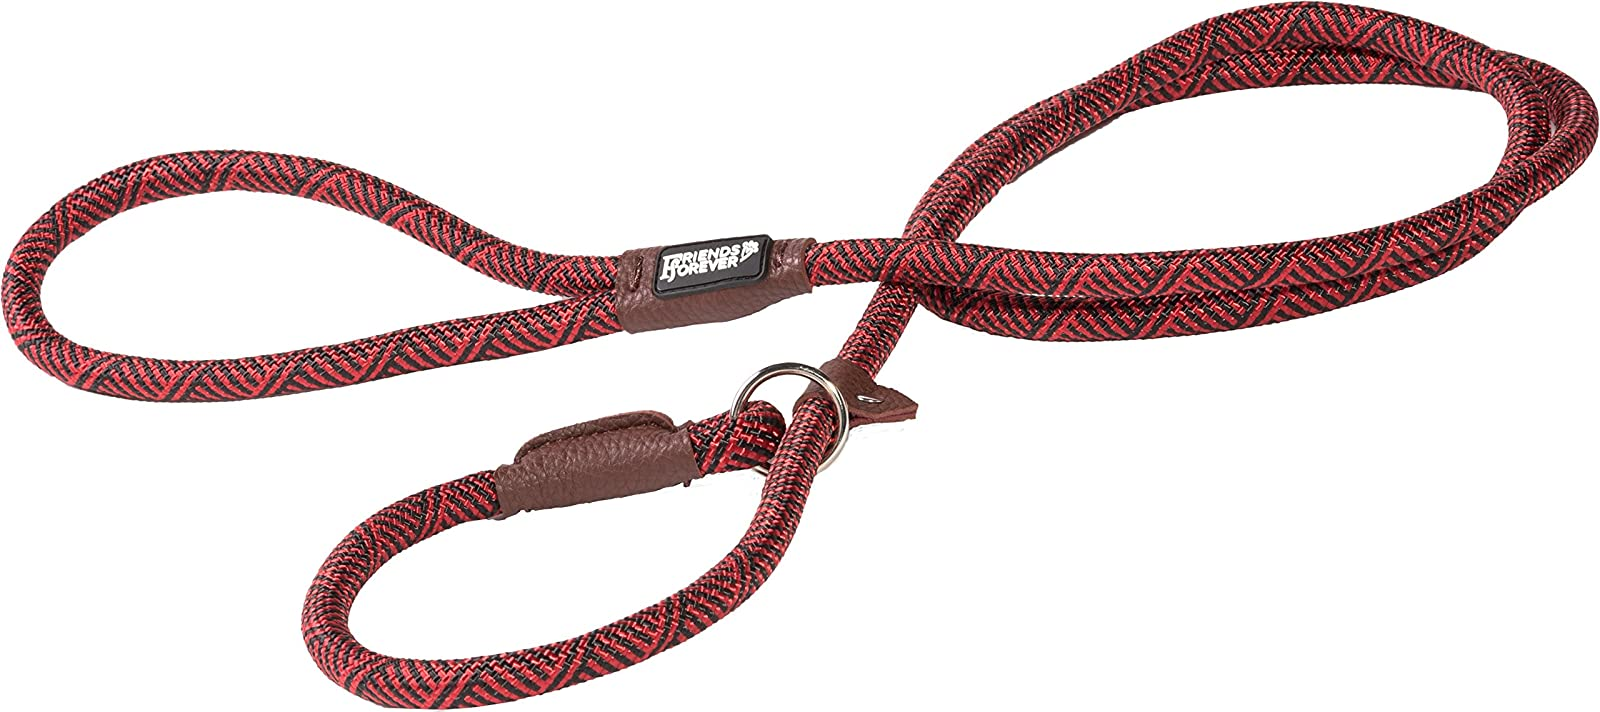 Friends Forever Extremely Durable Dog Rope Leash - 3